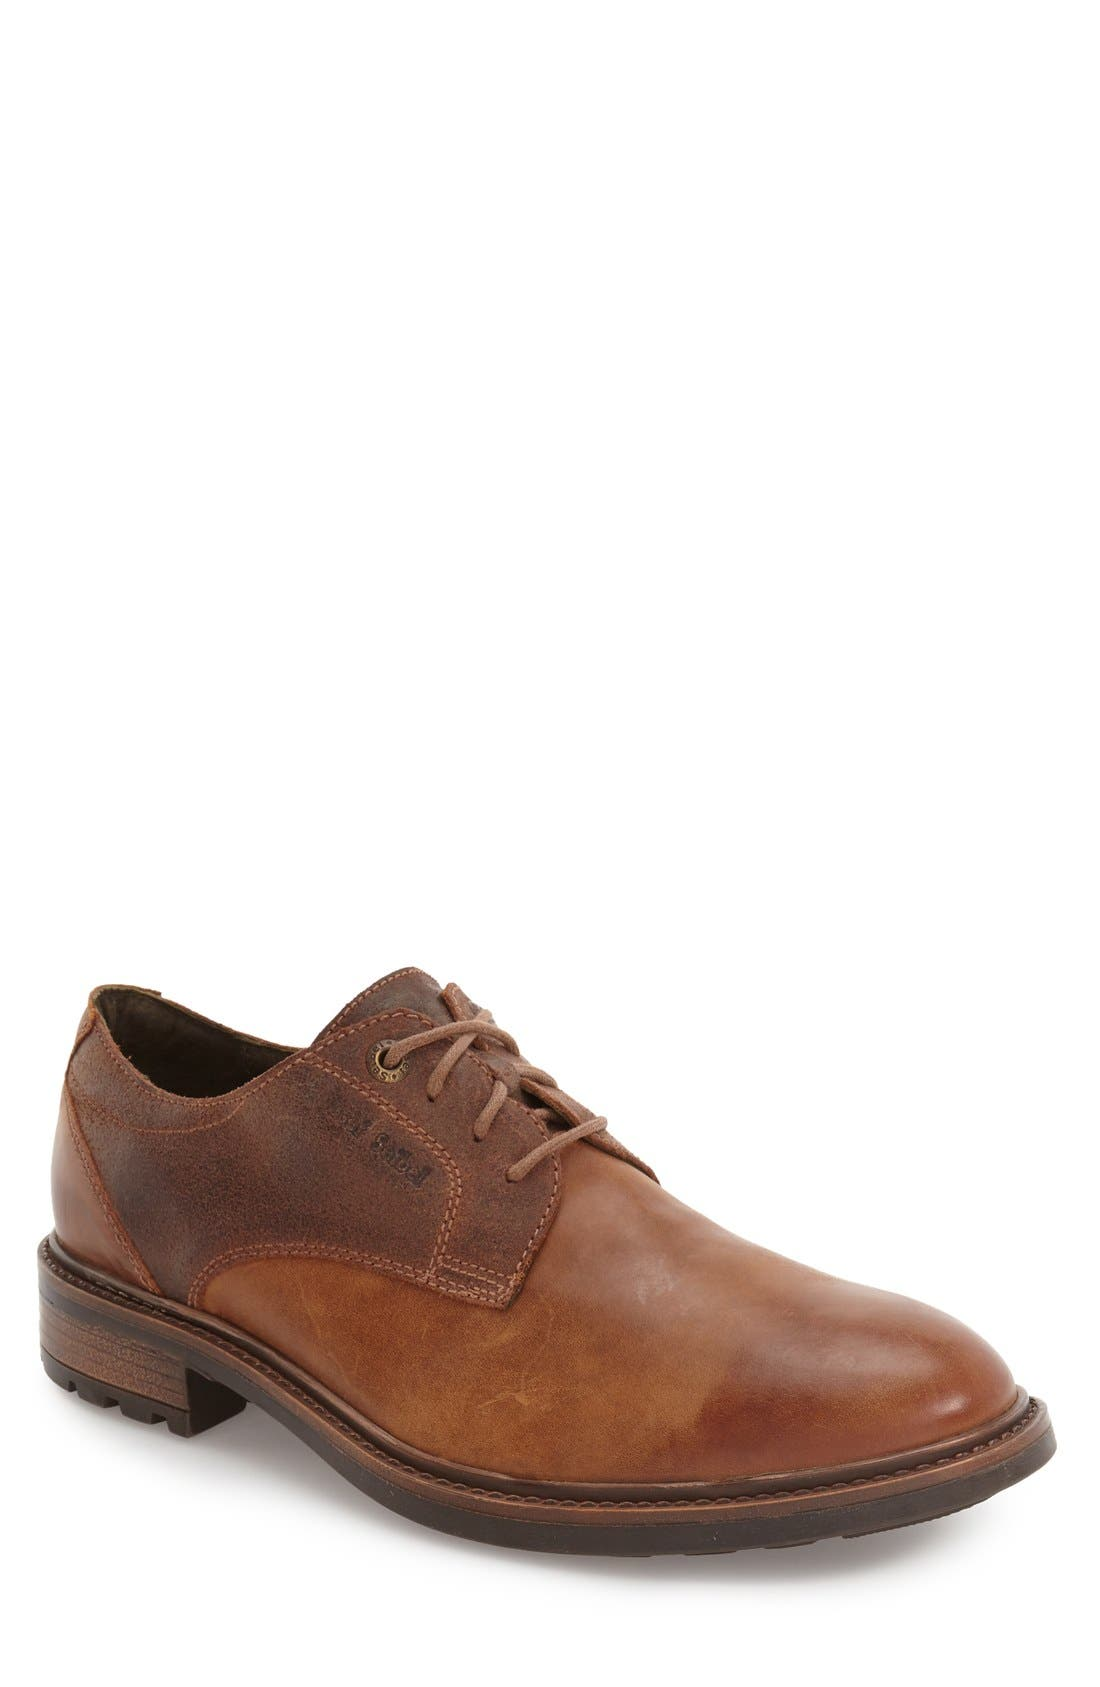 JOSEF SEIBEL Oscar Plain Toe Derby